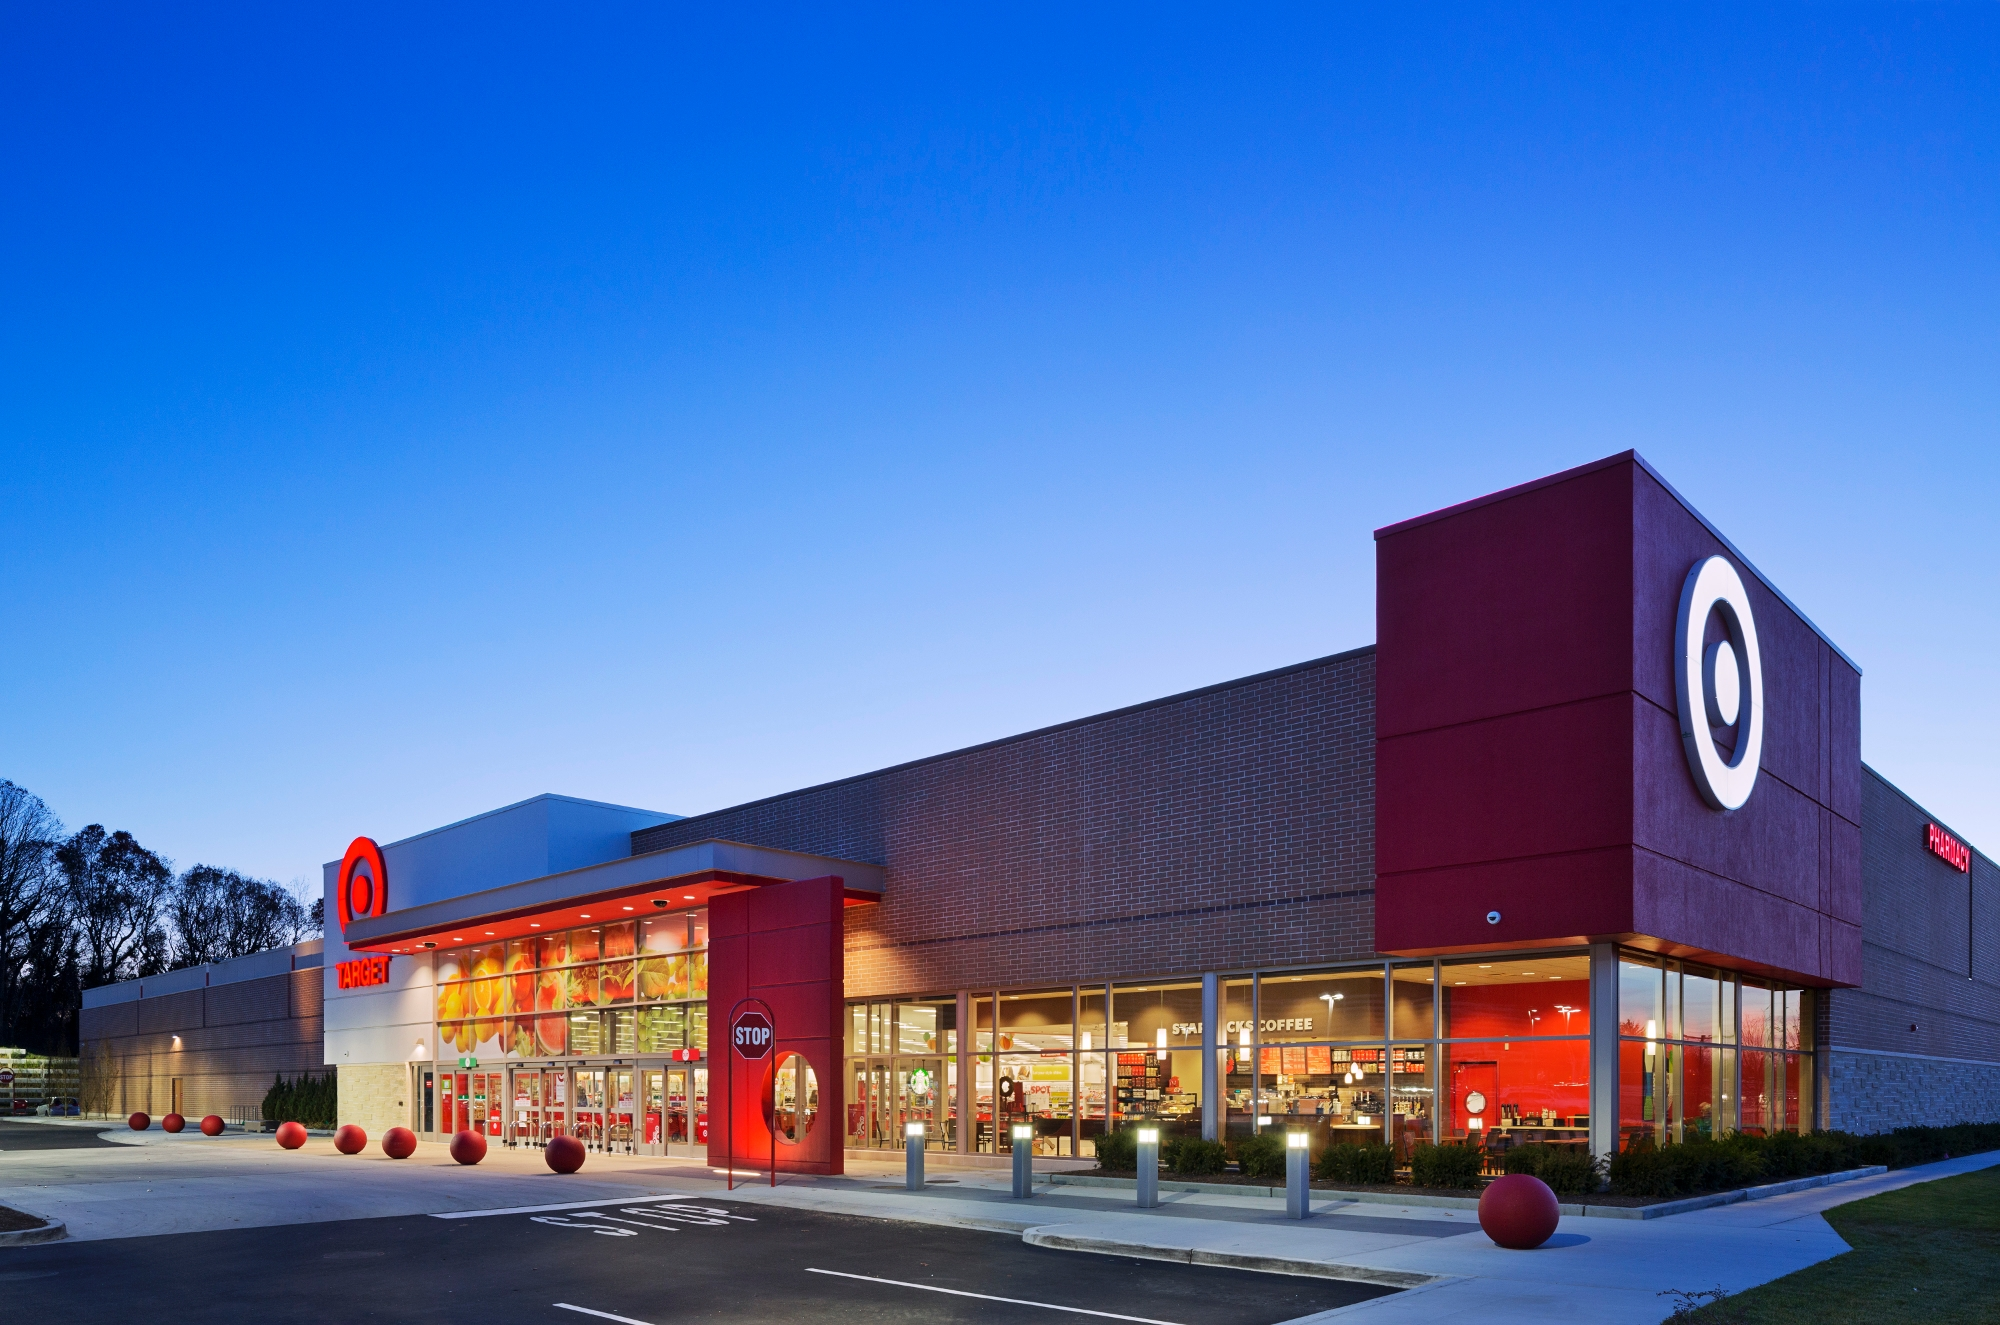 job application for retail stores professional resume cover job application for retail stores part time retail jobs in washington dc now hiring snagajob target